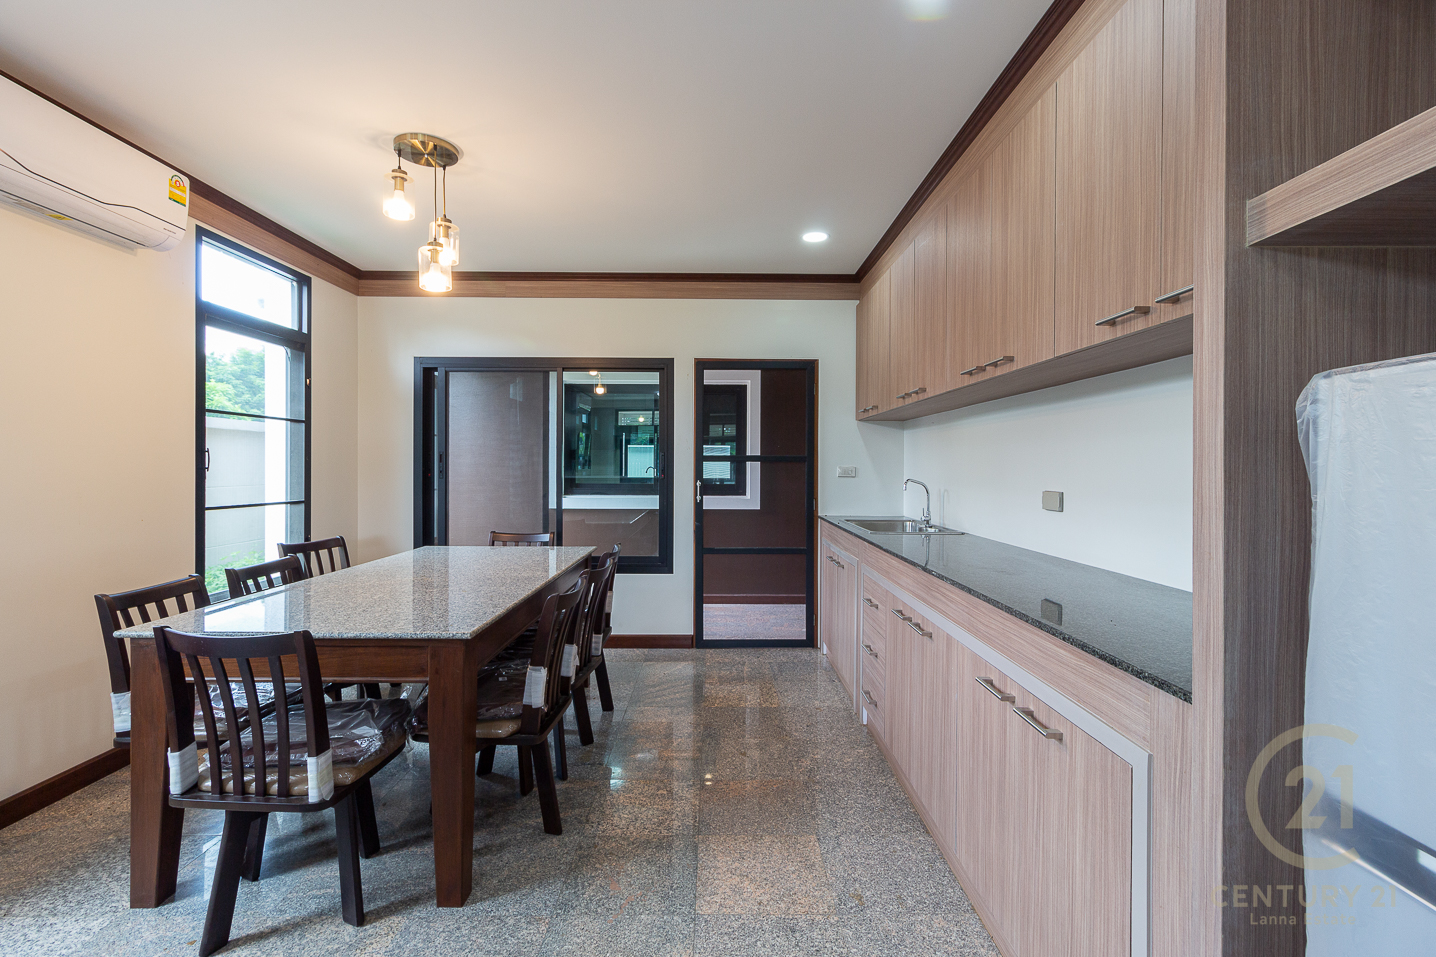 Beautifully untouchable House for SALE, ultimate privacy